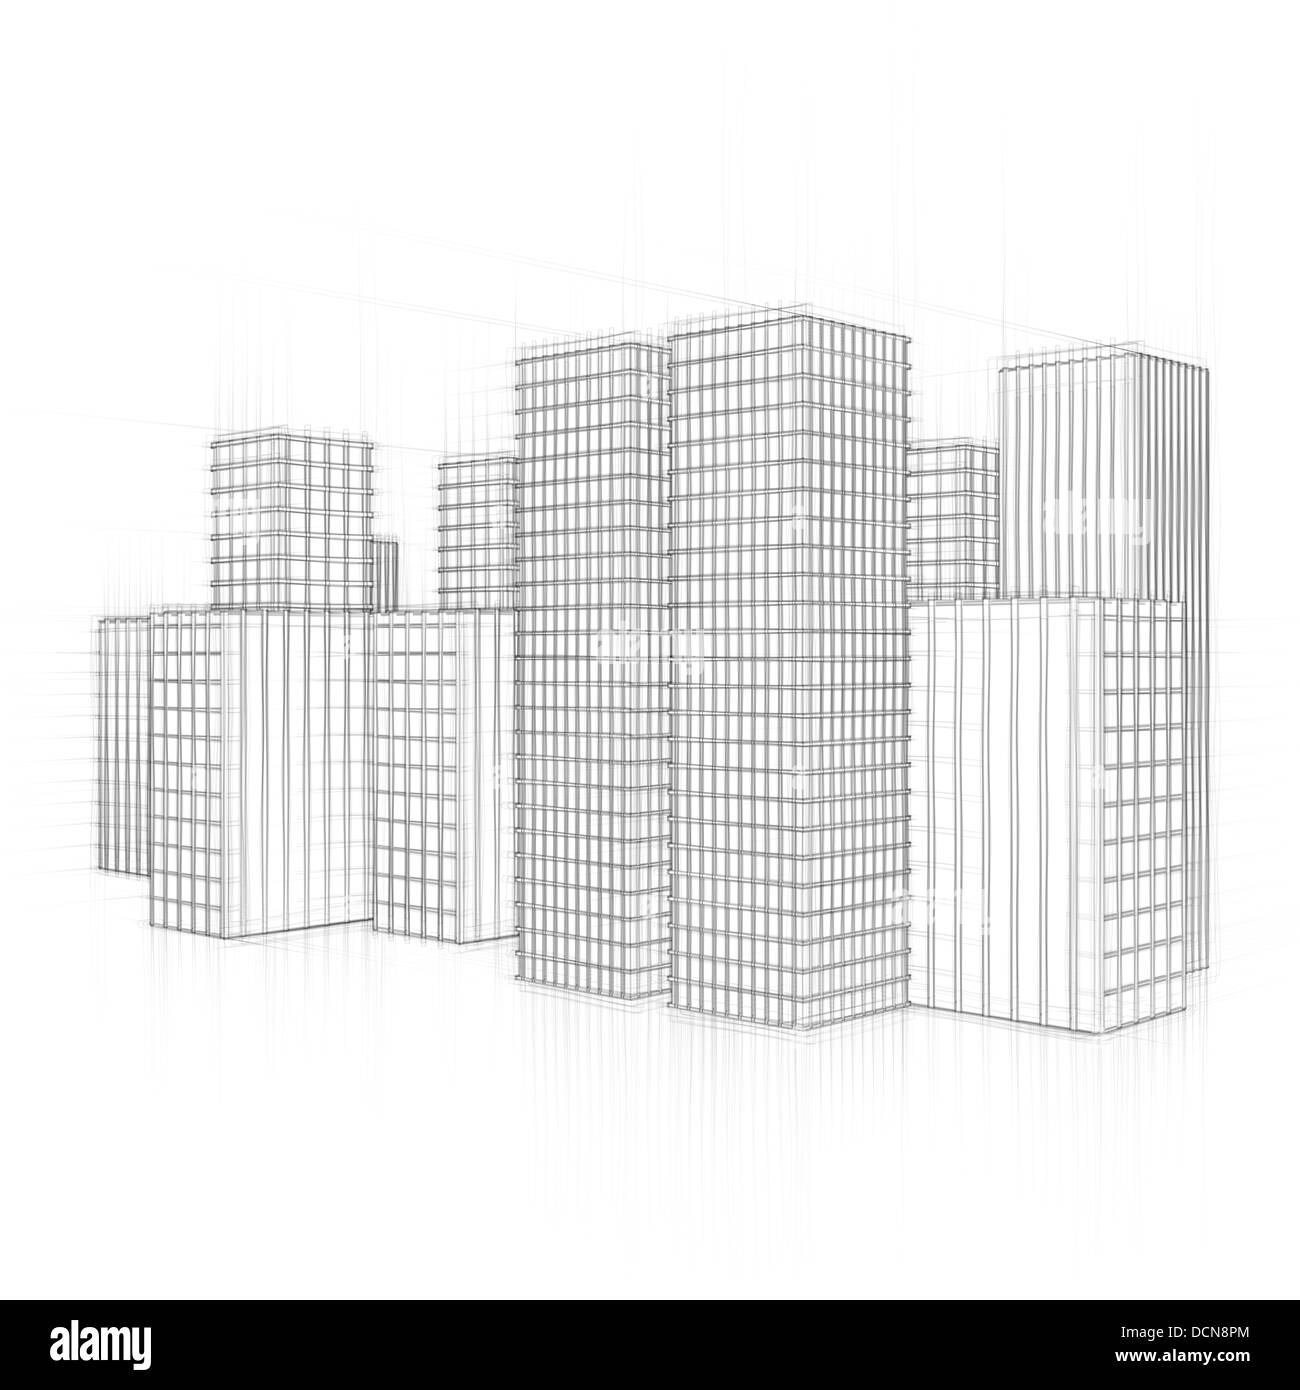 line drawing of city with large office towers - Stock Image